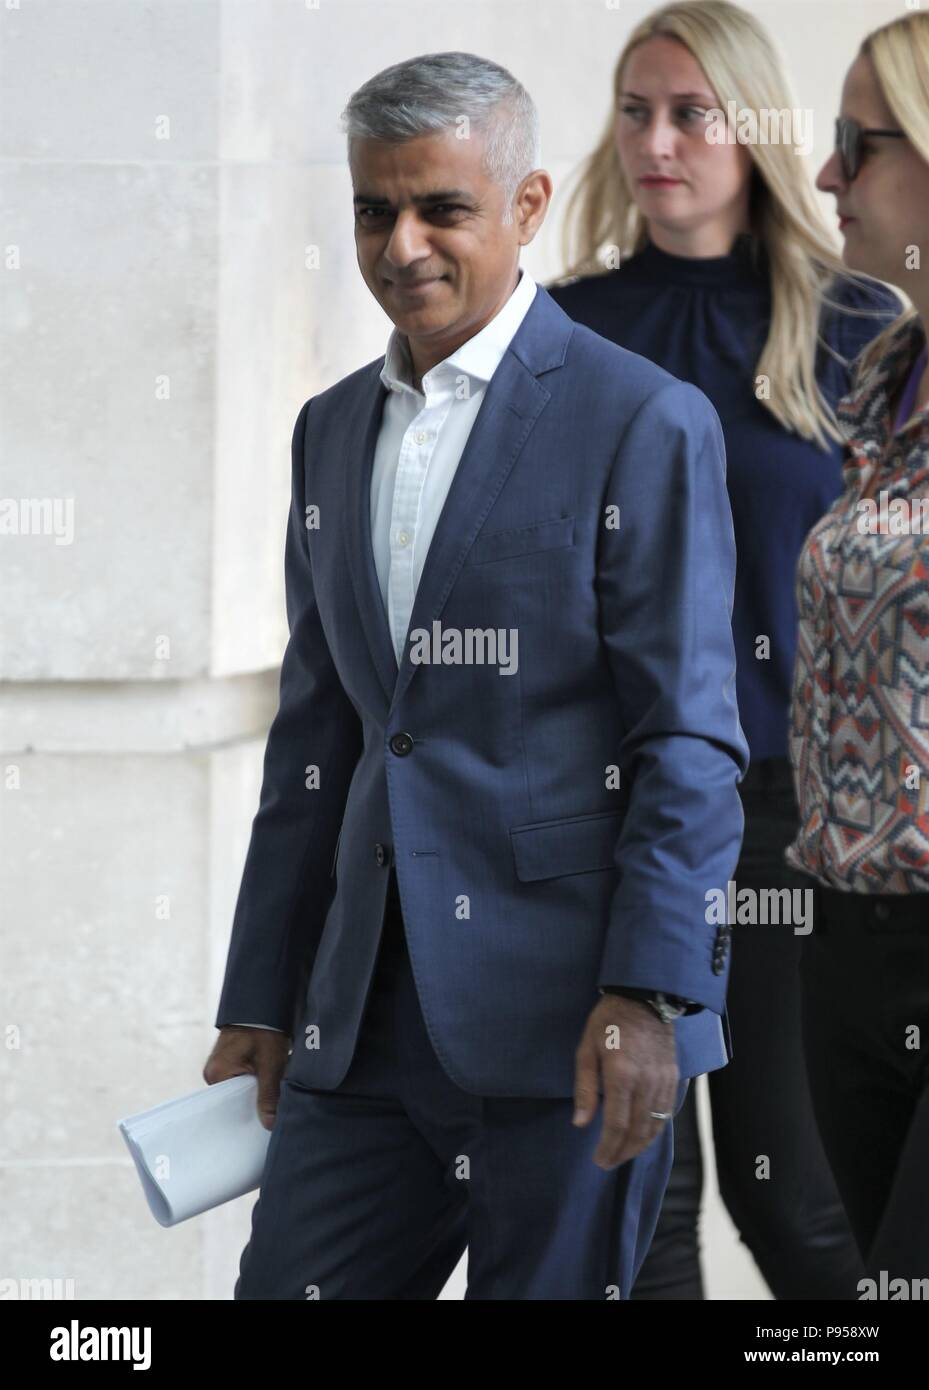 London, UK, July 15, 2018. Sadiq Khan Mayor of London seen arriving for the BBC Andrew Marr show at the BBC Credit: WFPA/Alamy Live News - Stock Image